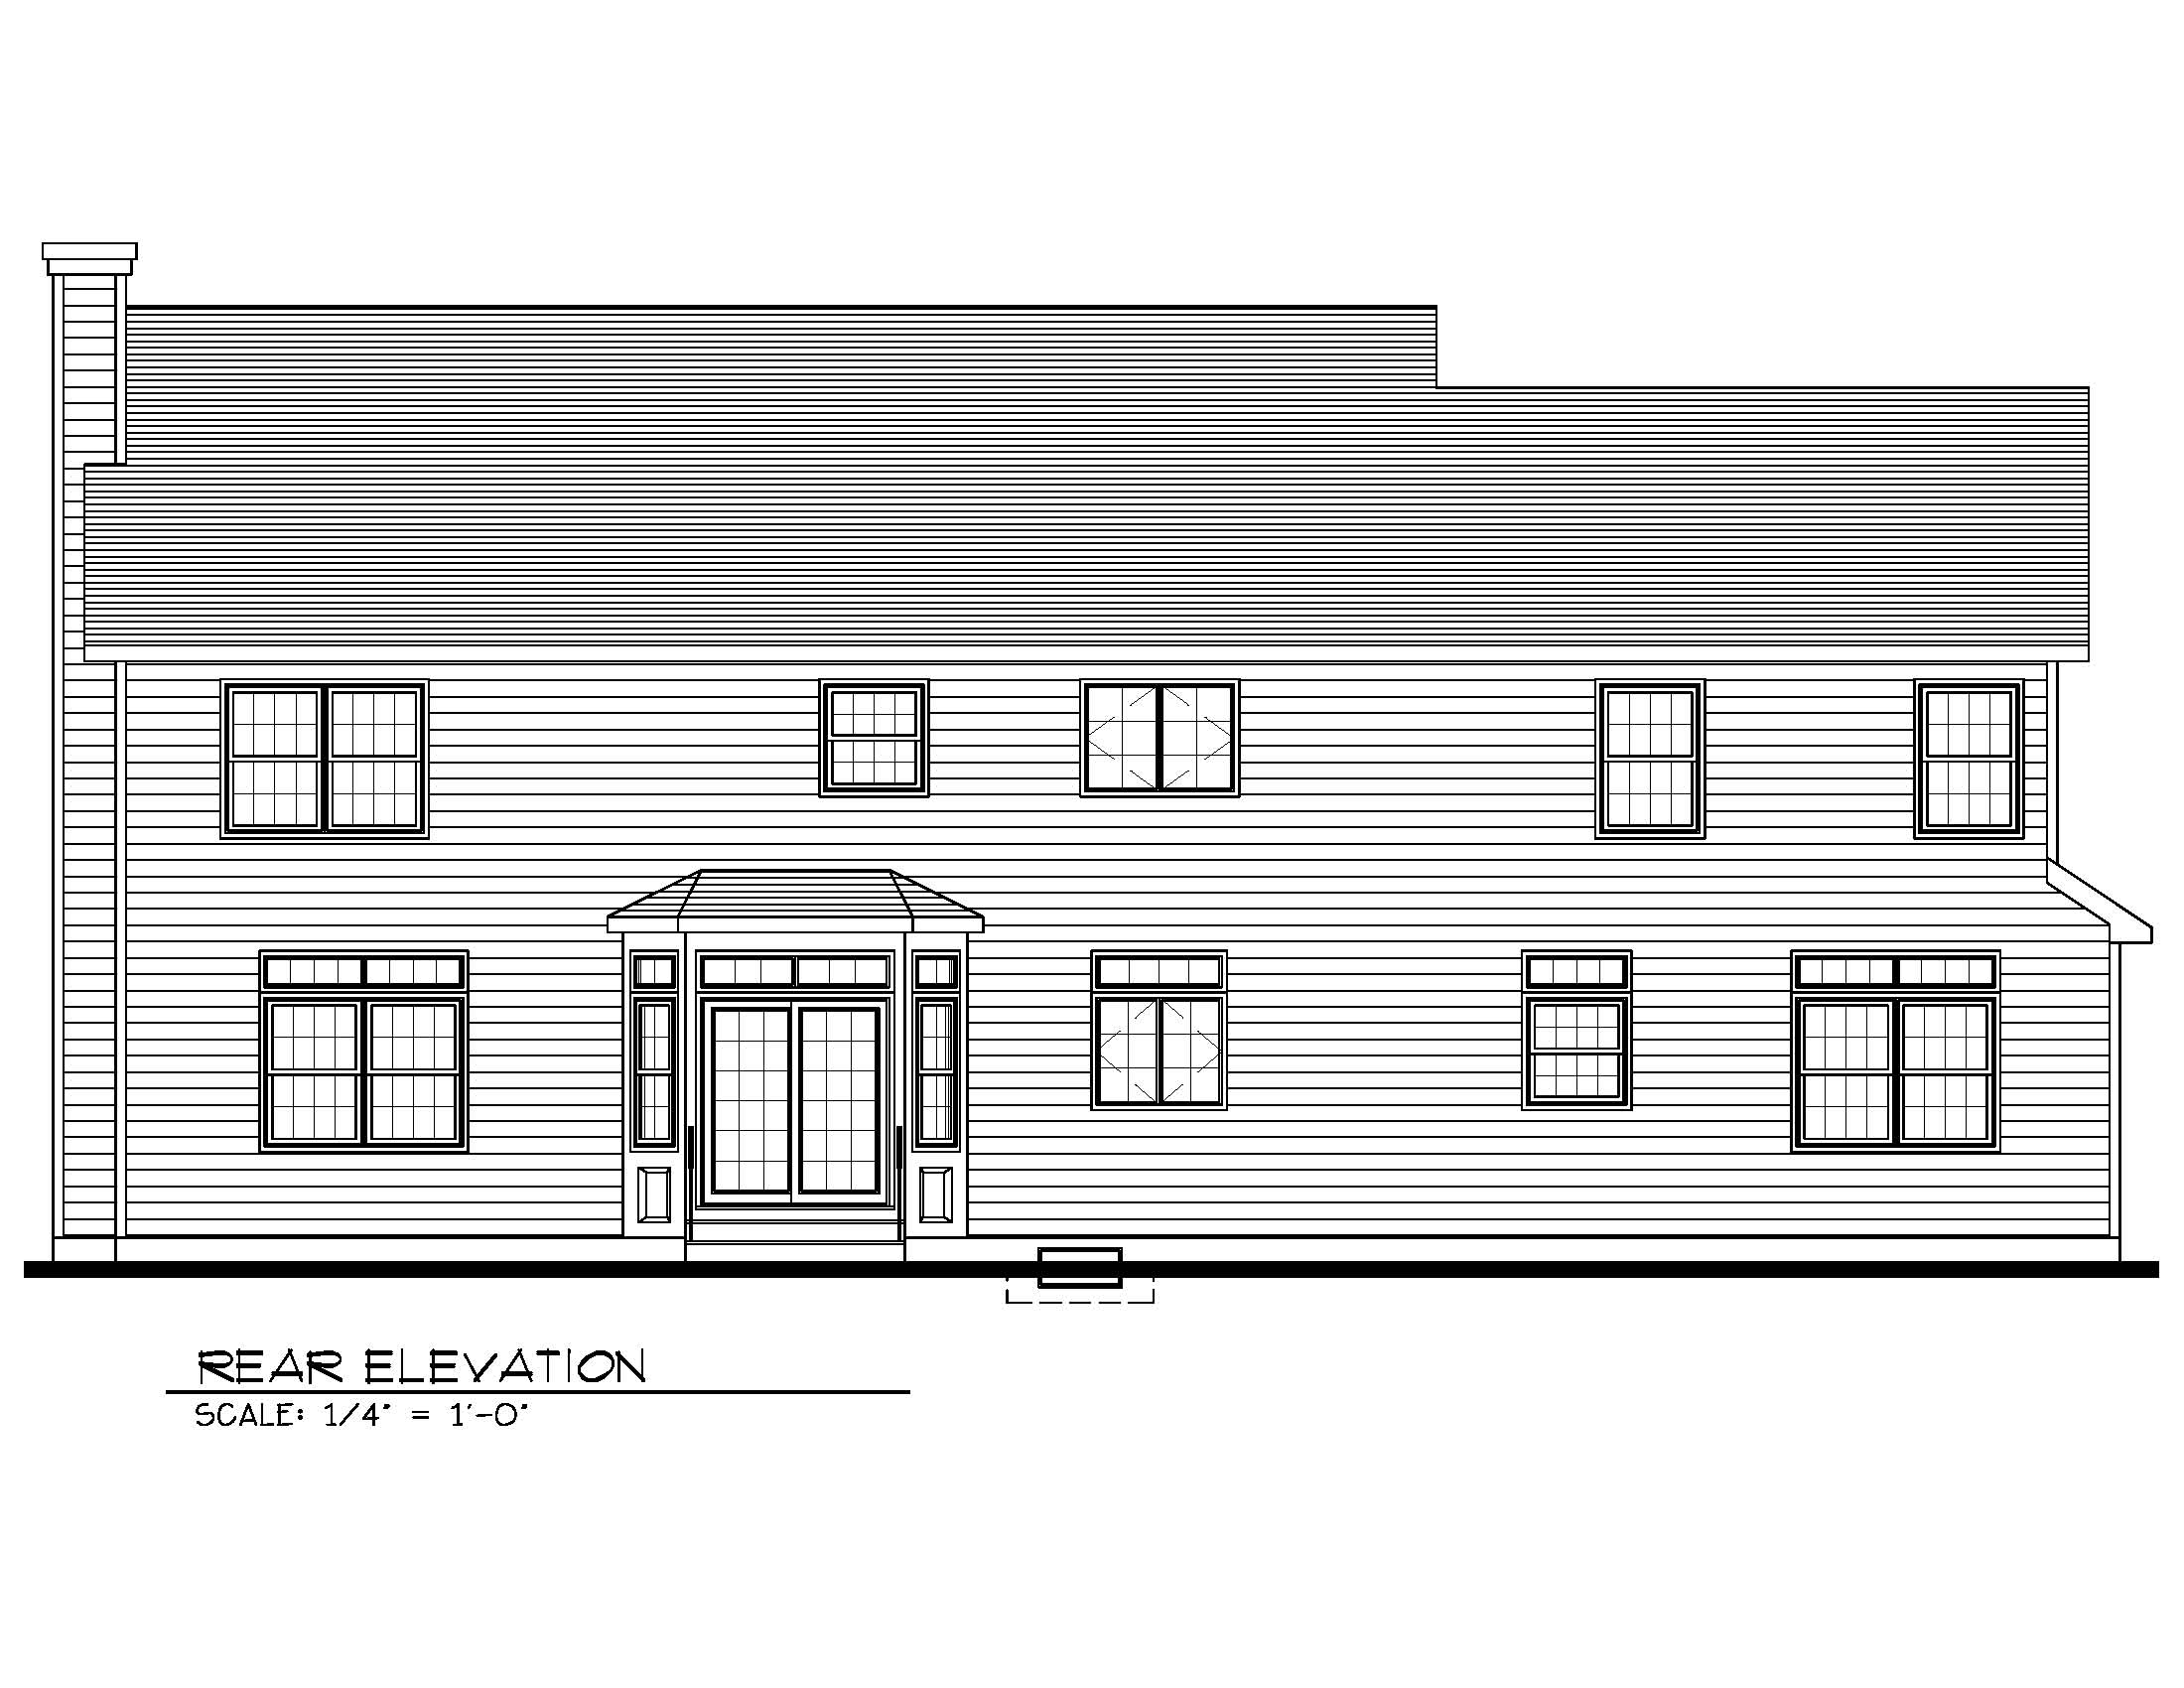 670 Carleton Rear Elevation